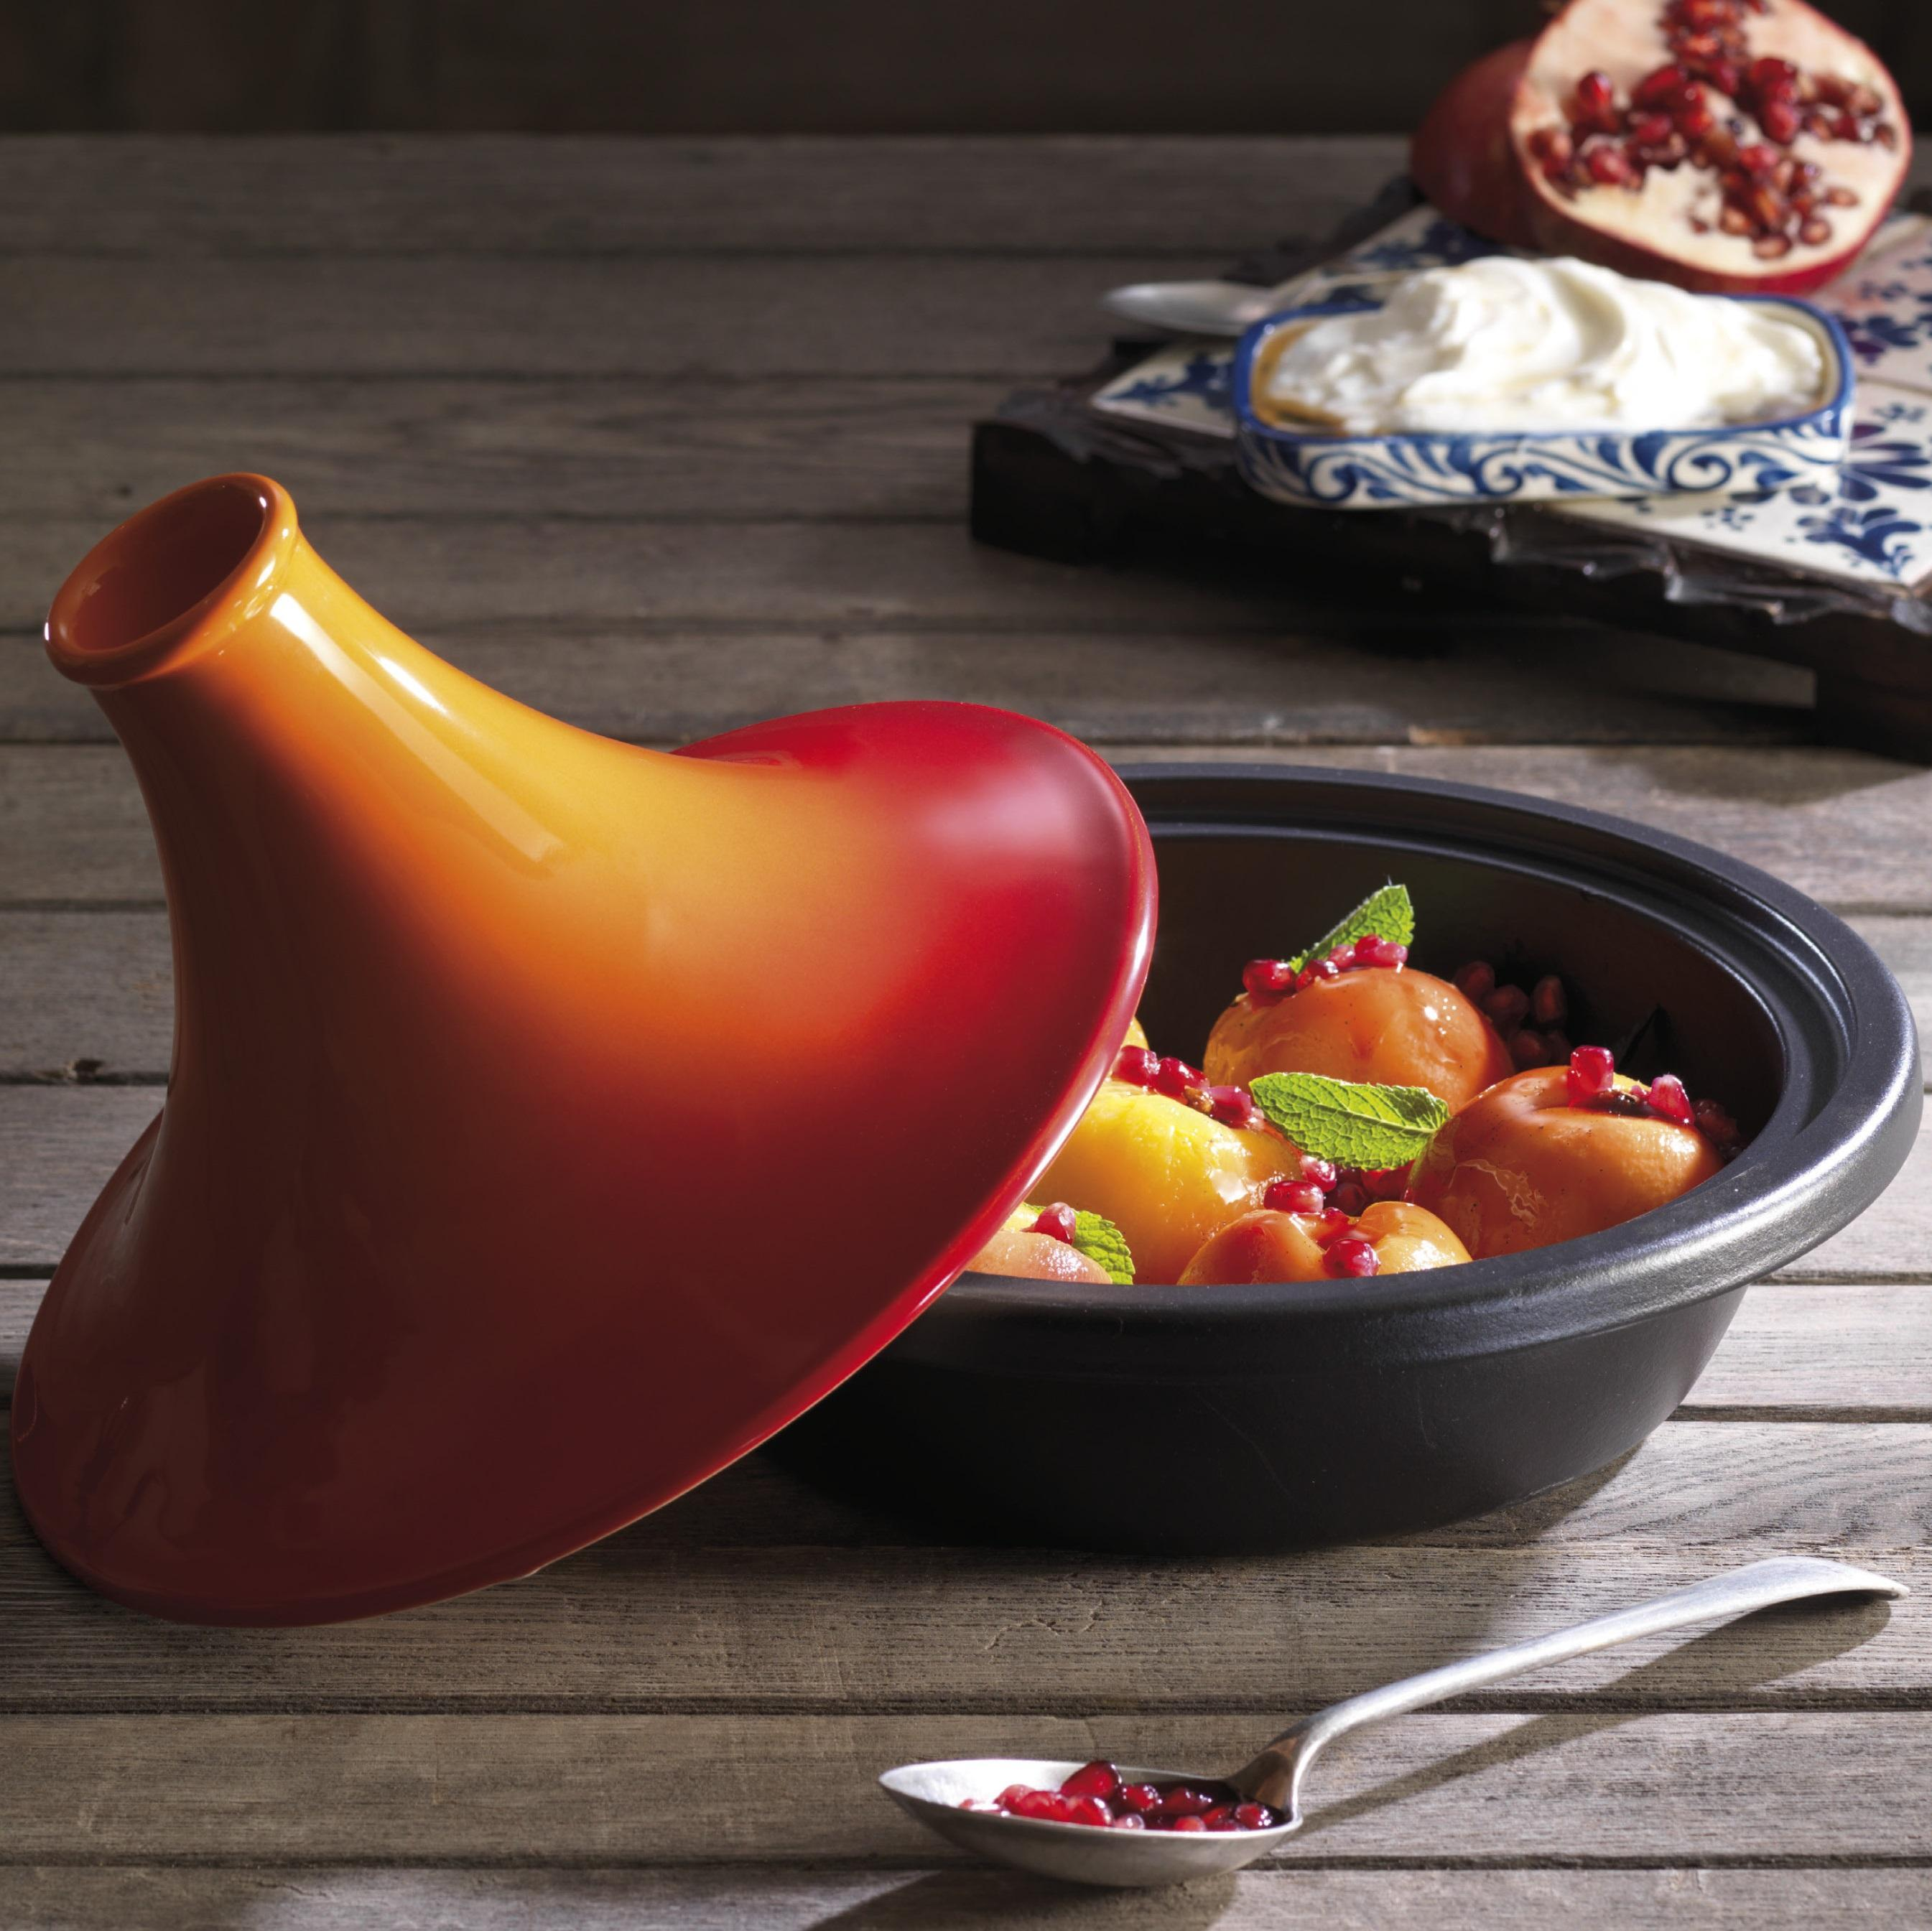 le creuset gusseisen spezialpfanne tagine 27 cm kirschrot k che haushalt. Black Bedroom Furniture Sets. Home Design Ideas